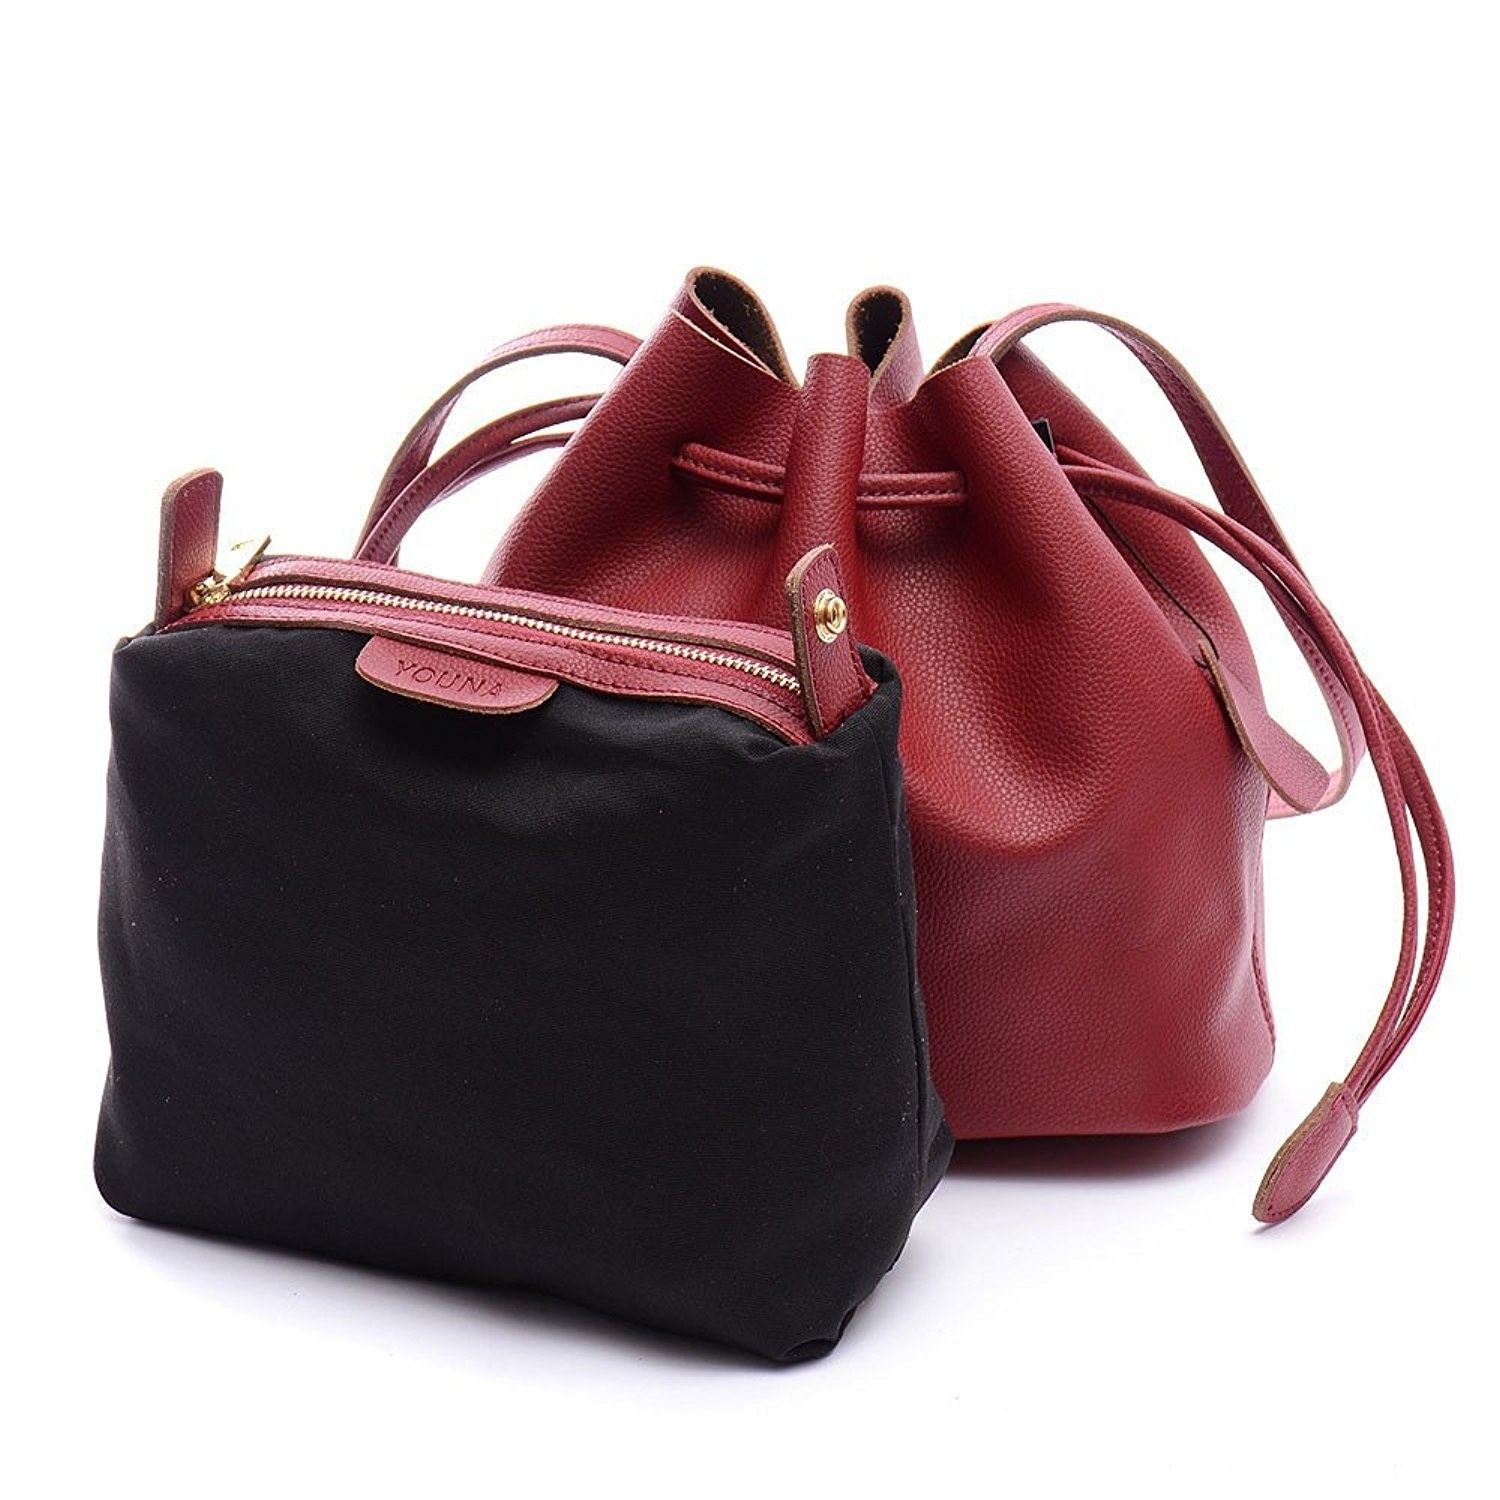 34 Of The Best Leather Bags You Can Get On Amazon afe60c998b56a